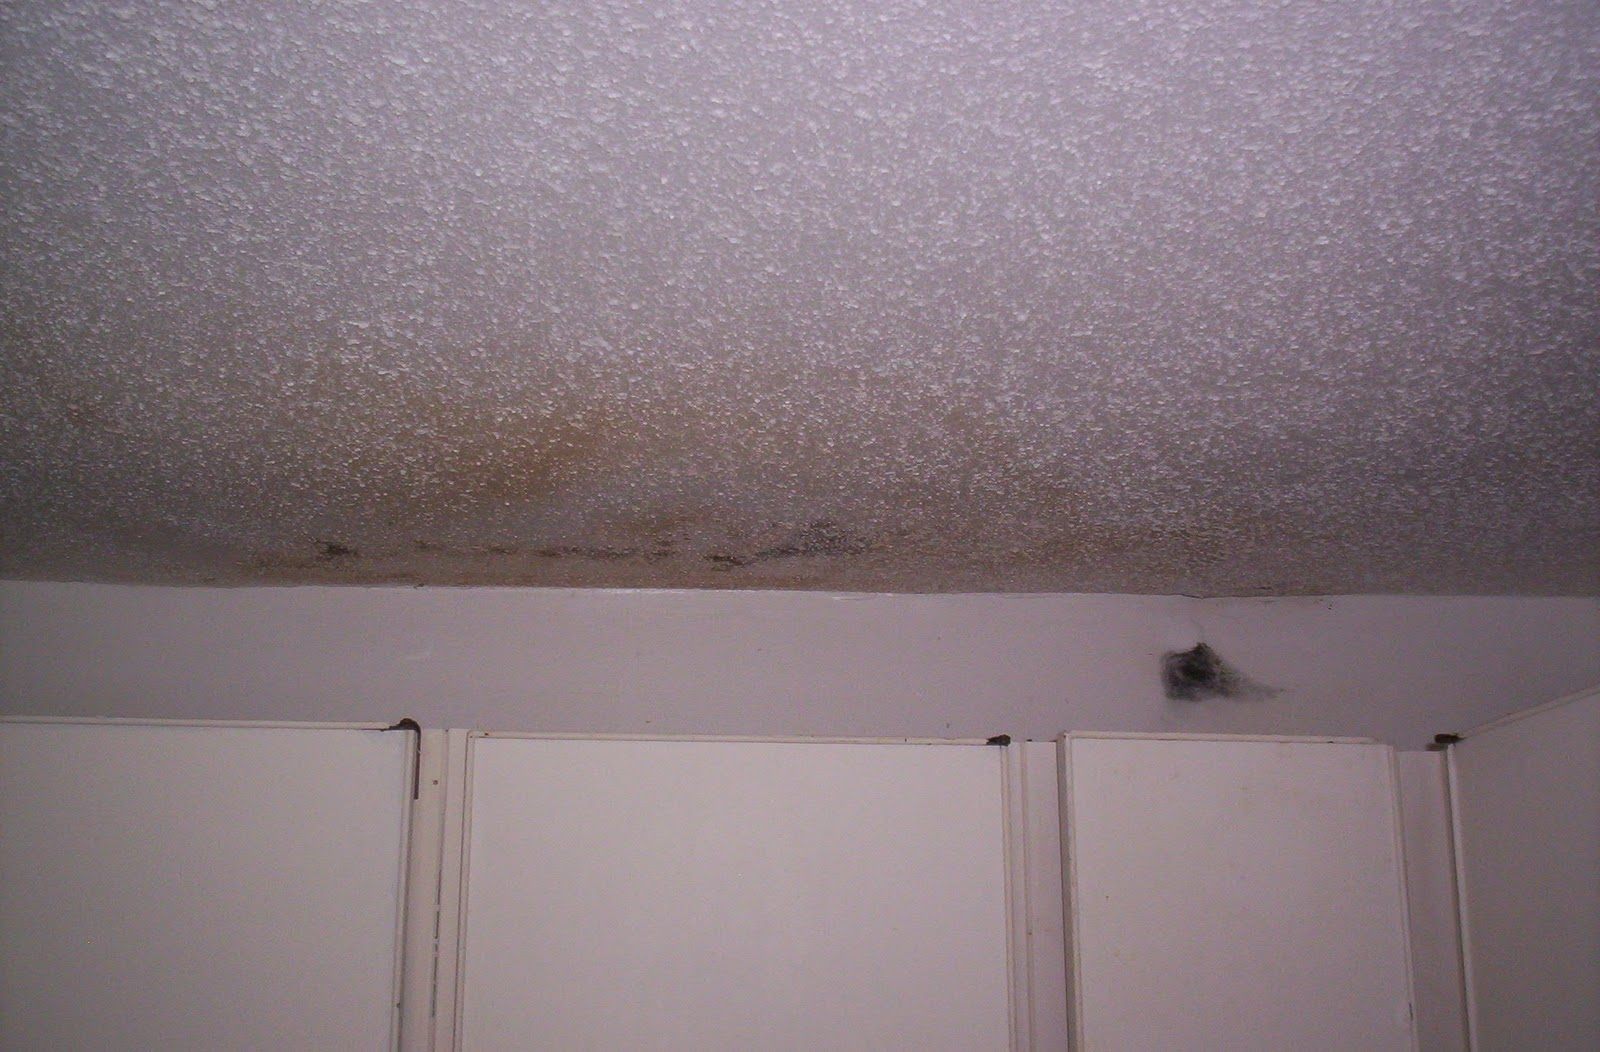 how to know if you have black mold in house